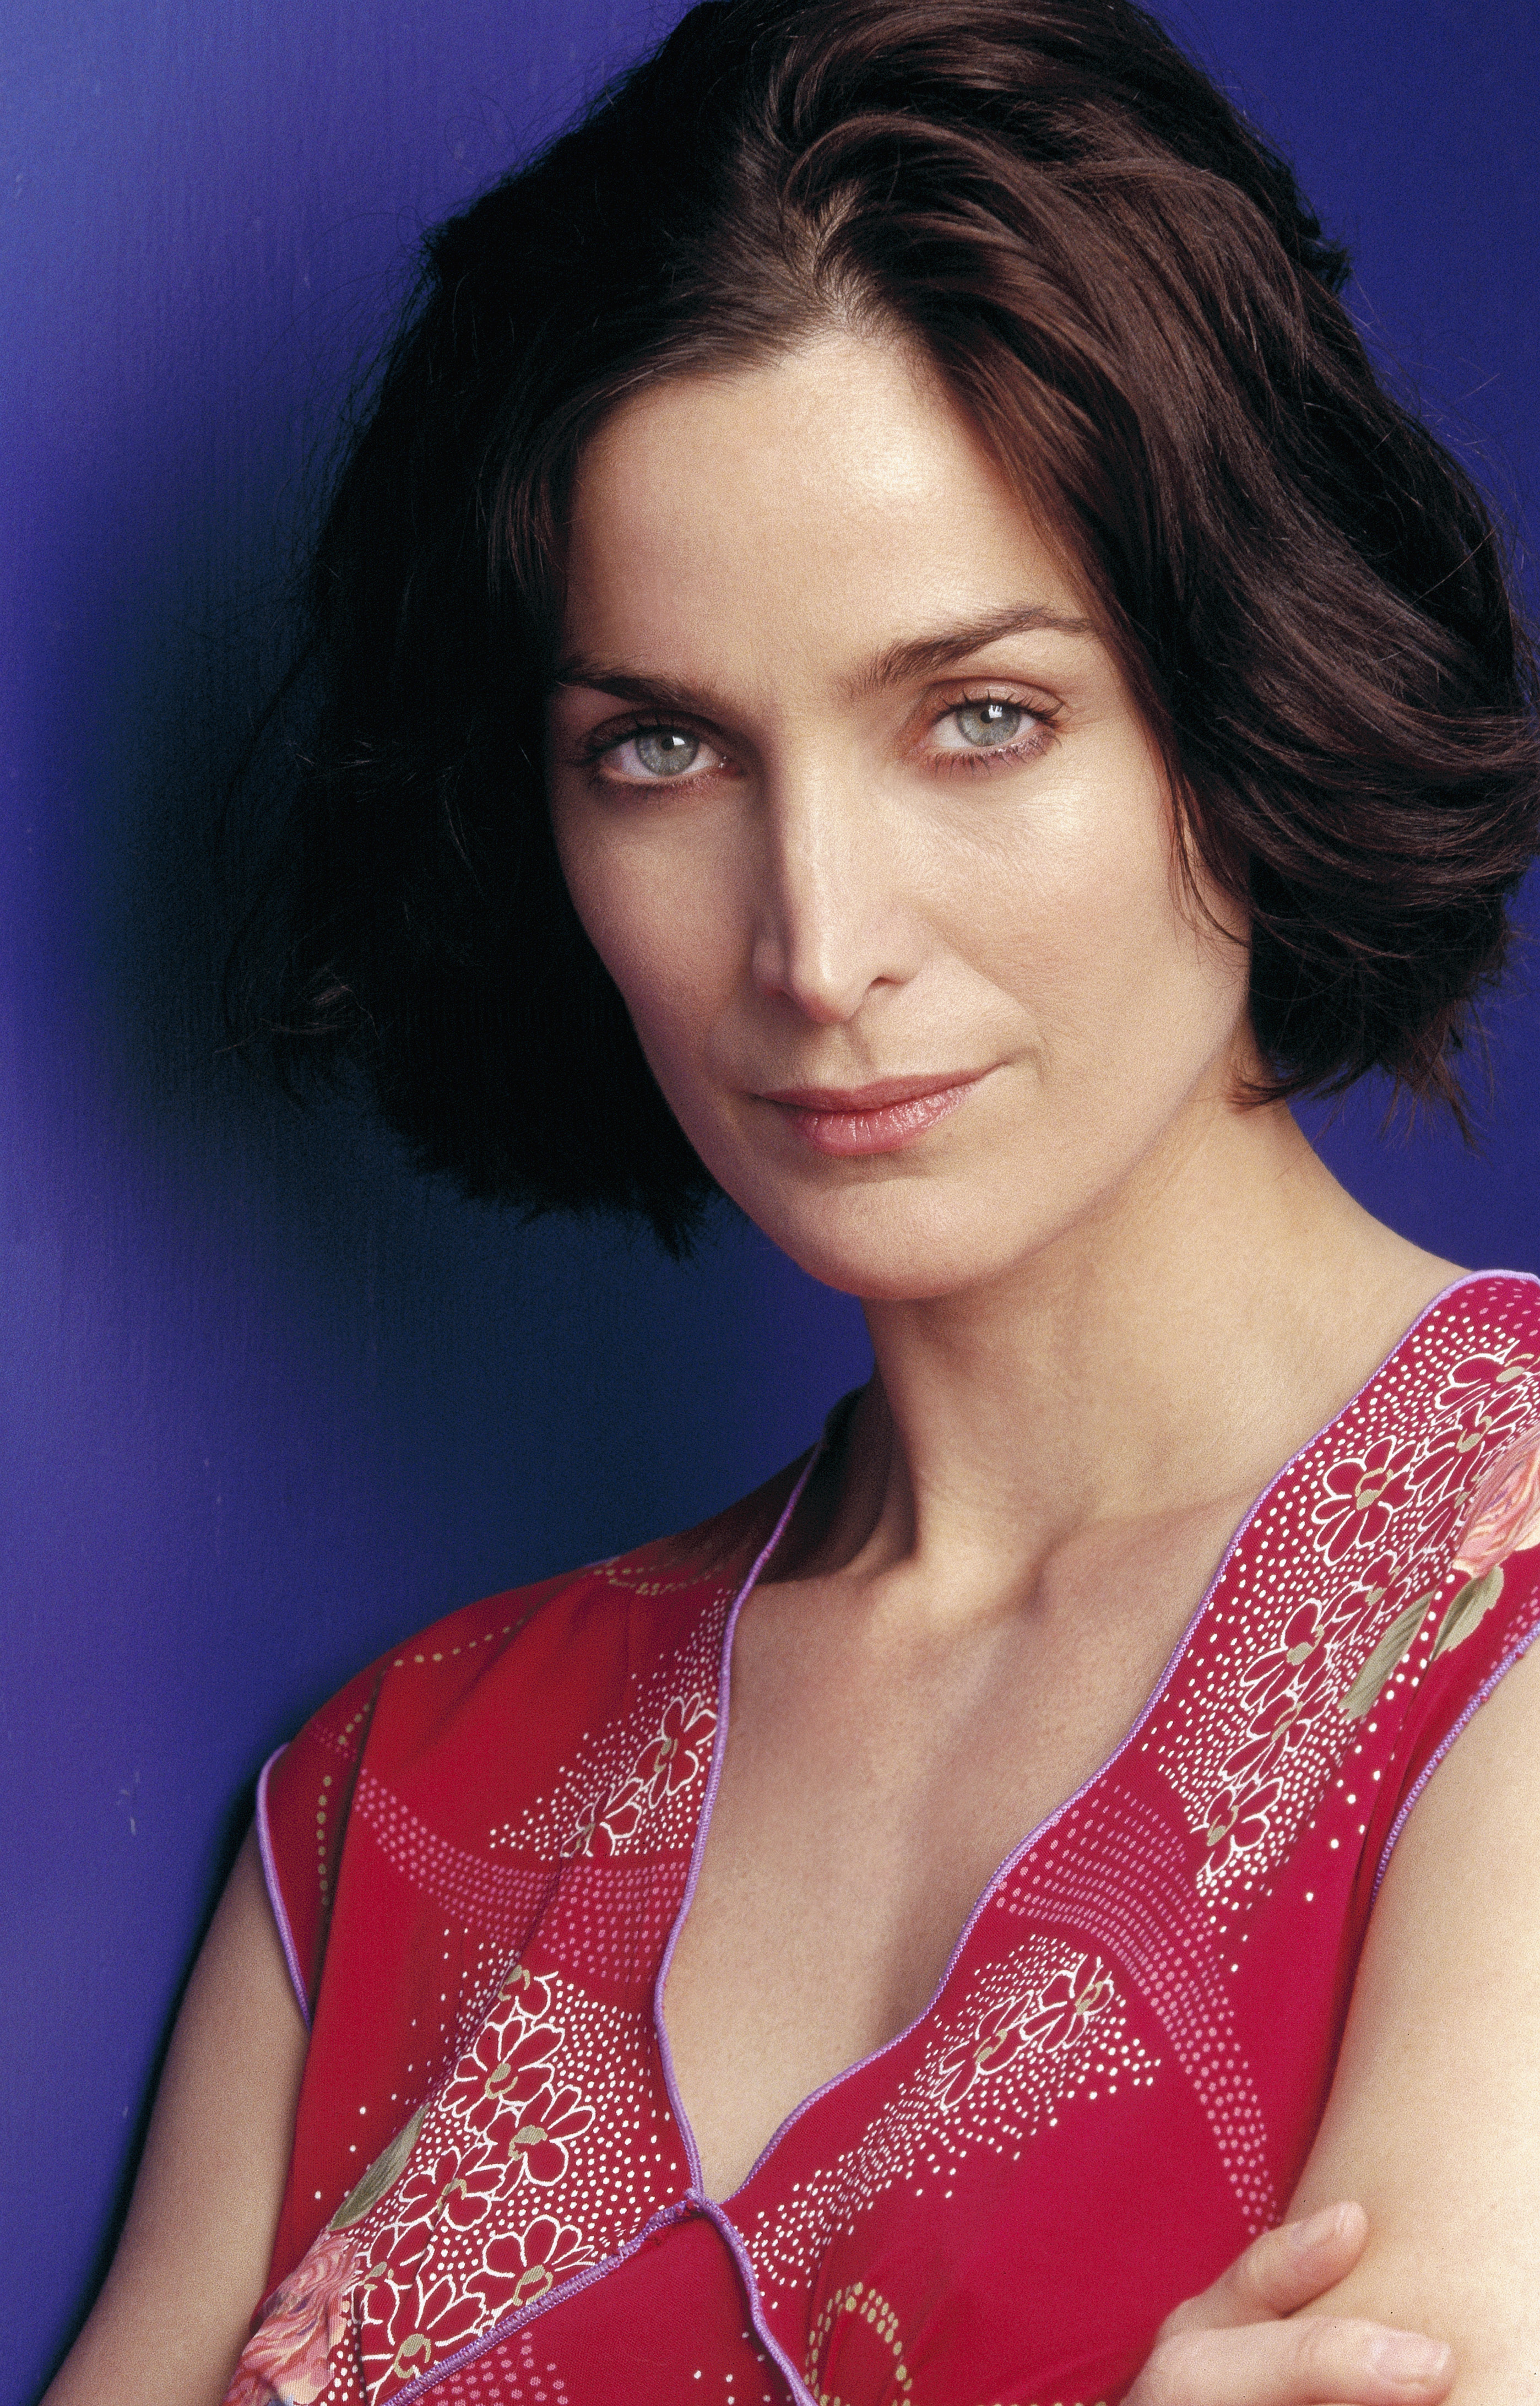 Carrie-Anne Moss - USA Today (March 11, 2001) HQ